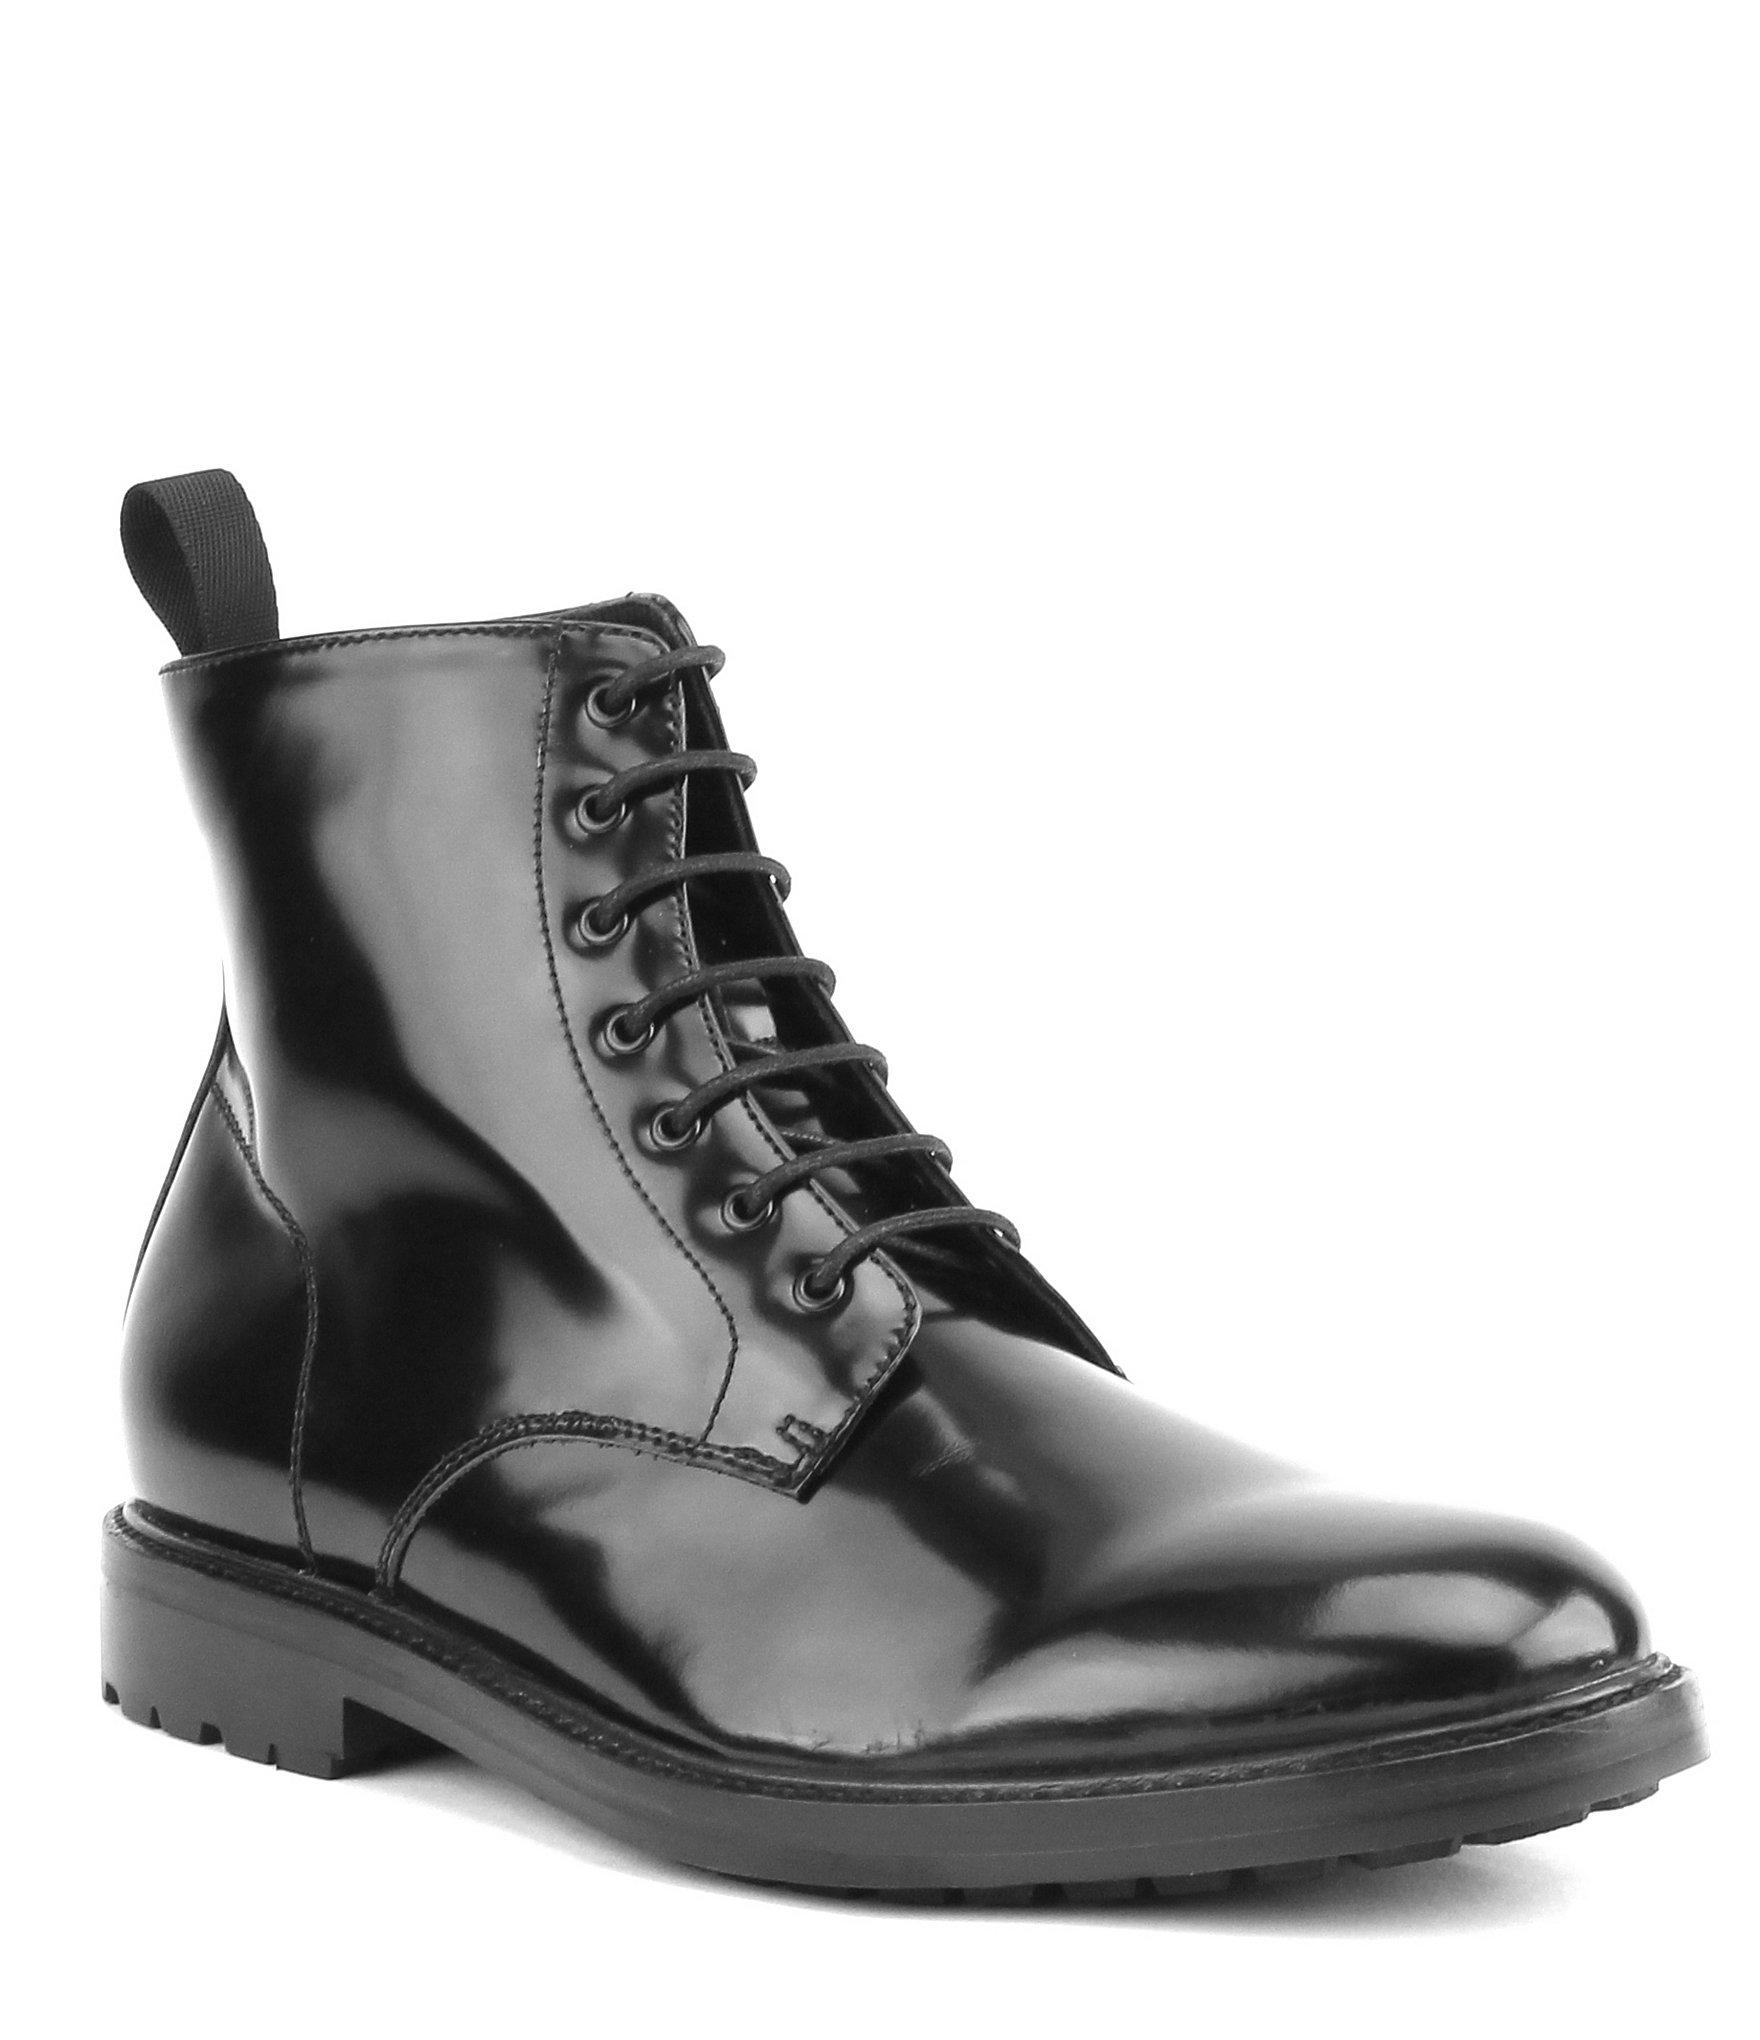 7f73a0c04f3 Lyst - Gordon Rush Men s Raleigh Leather Boot in Black for Men